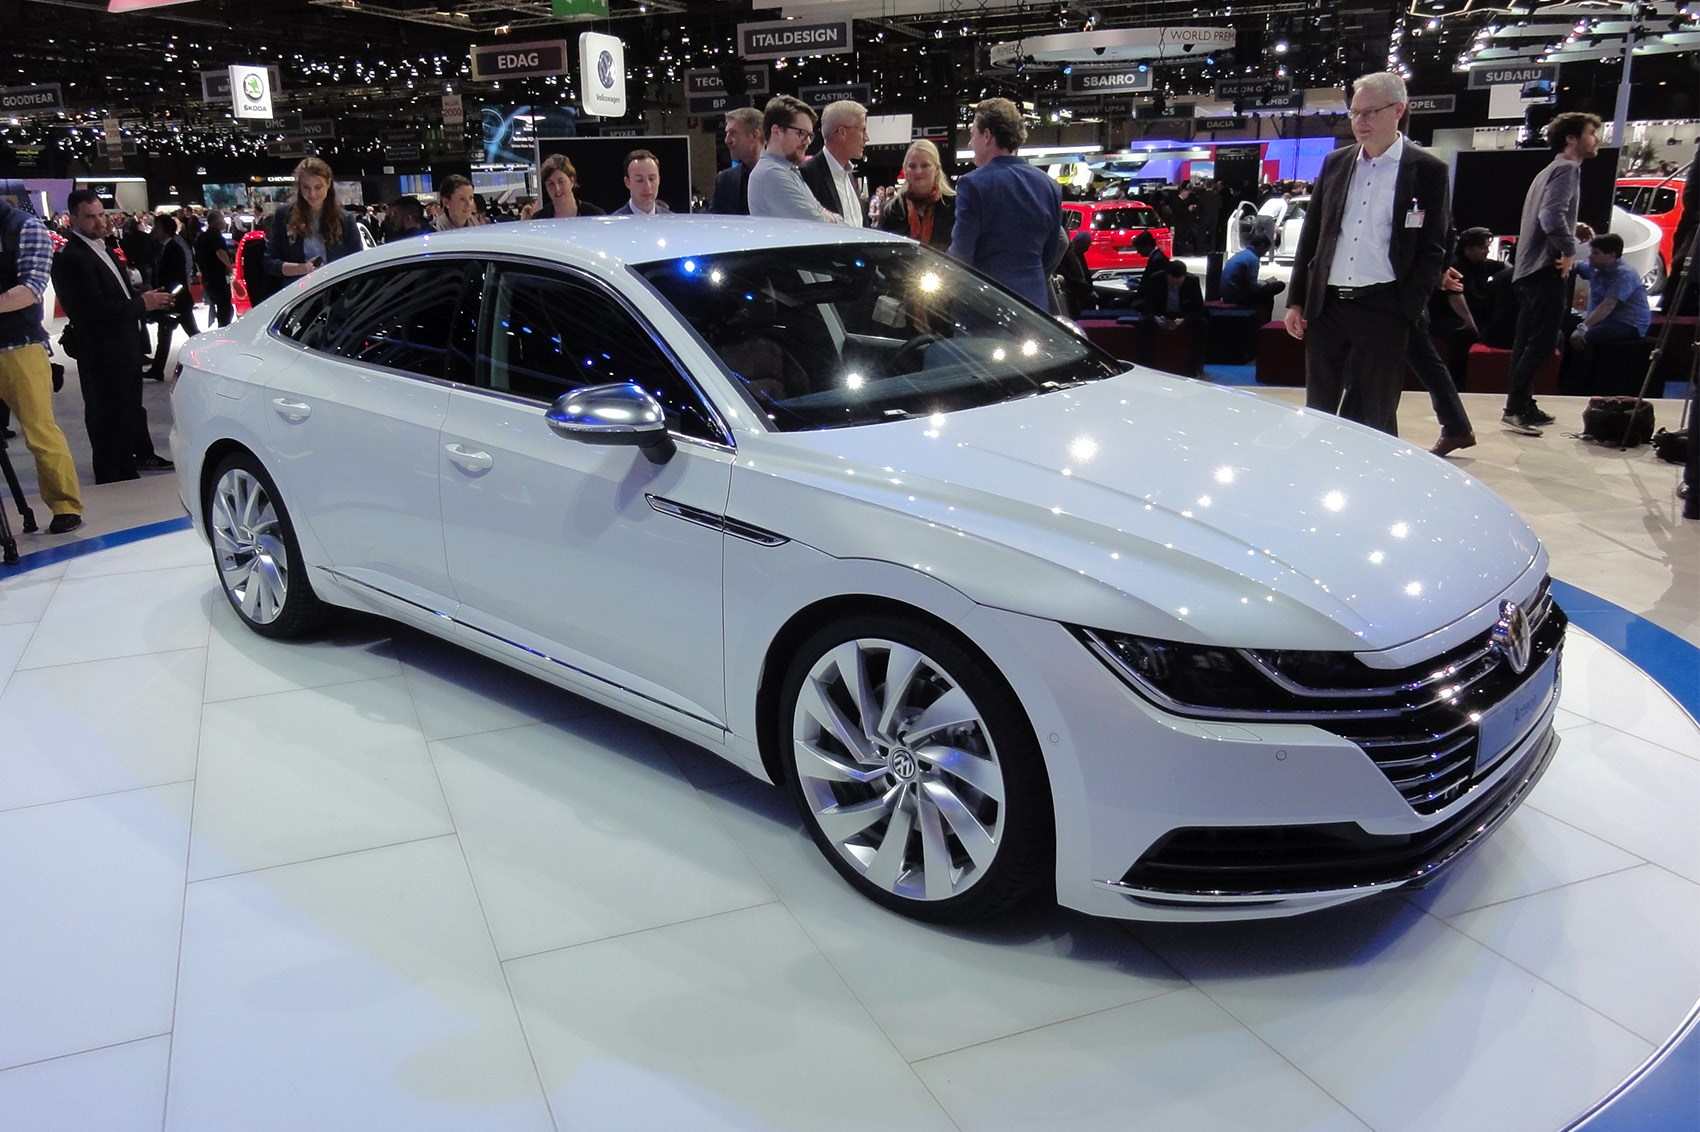 Cars For Sale Los Angeles >> VW Arteon revealed in full: 2017's Passat CC by CAR Magazine